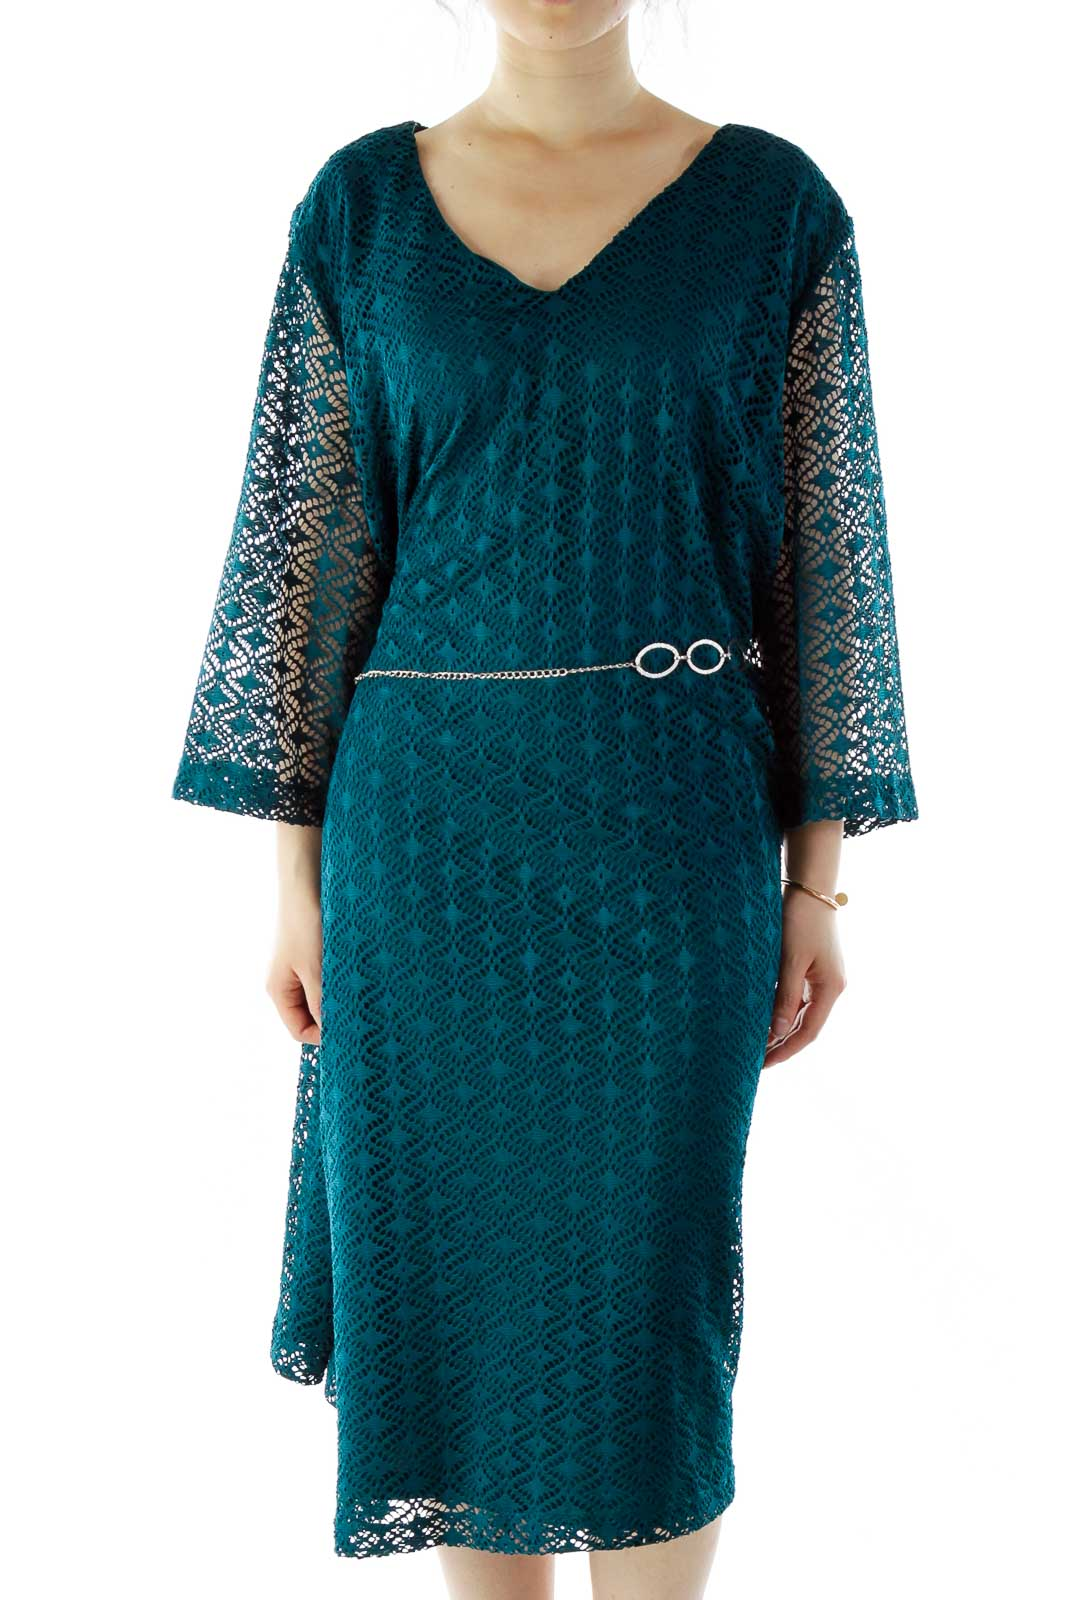 Green Crocheted Day Dress Front